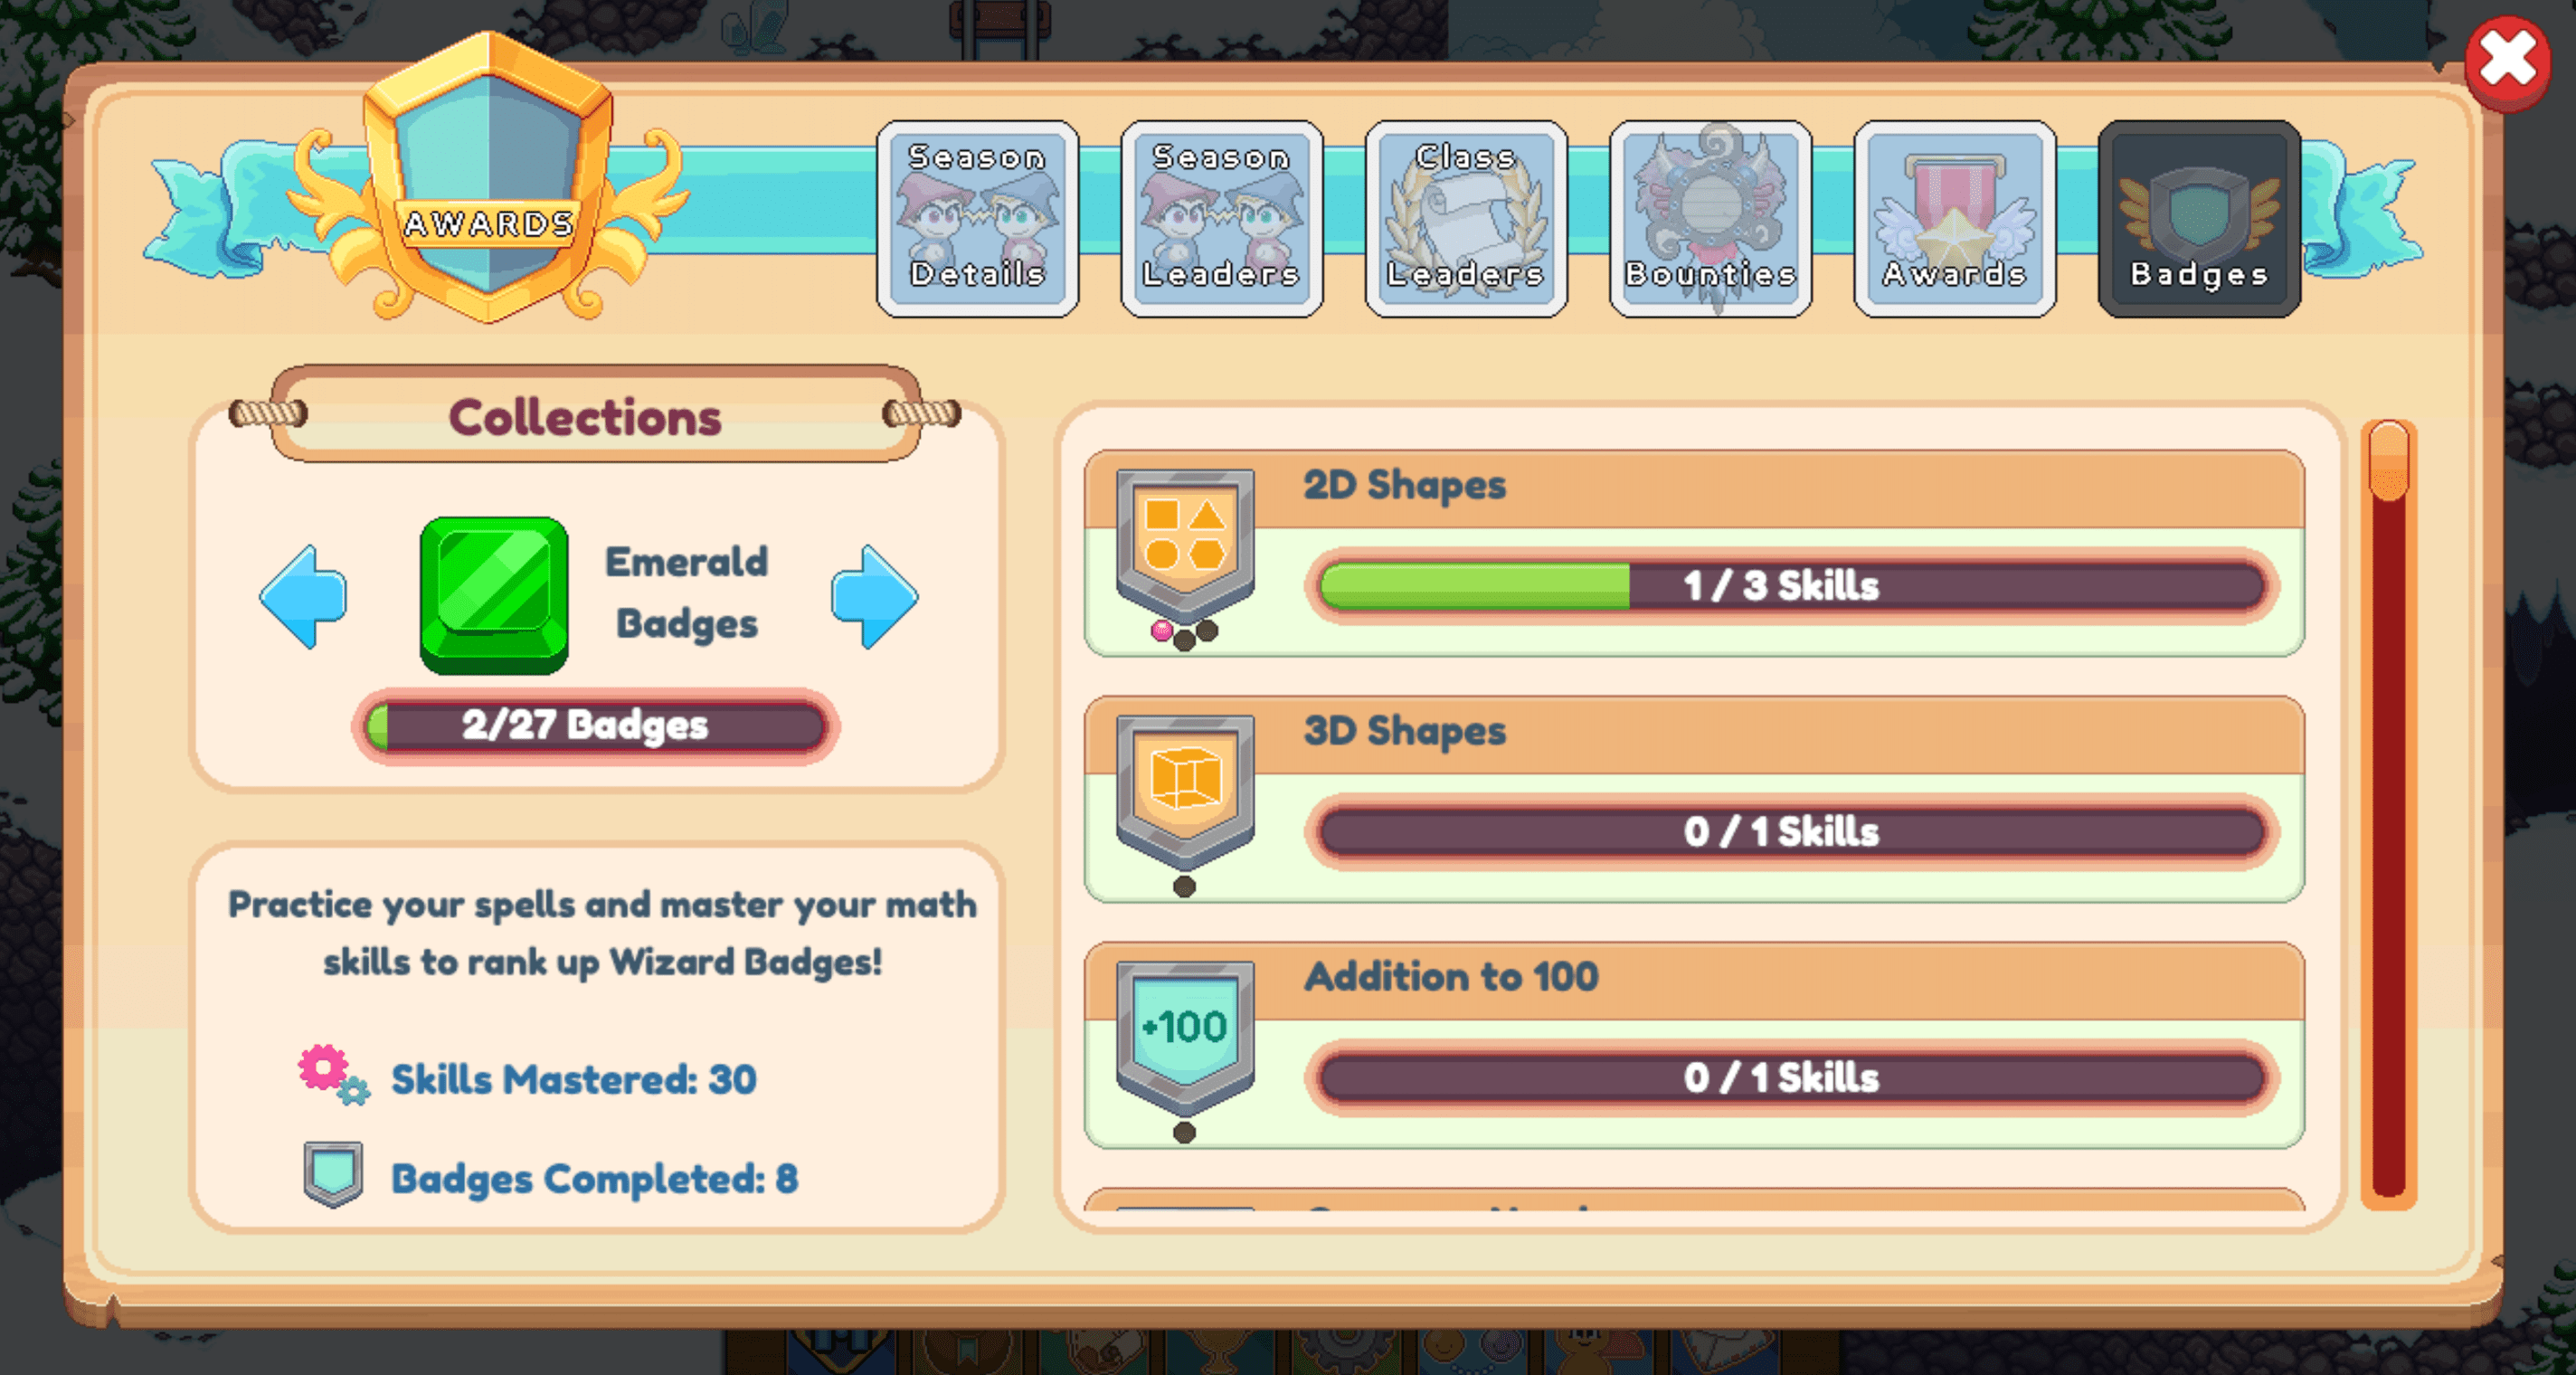 In-game image of Badges menu for players.